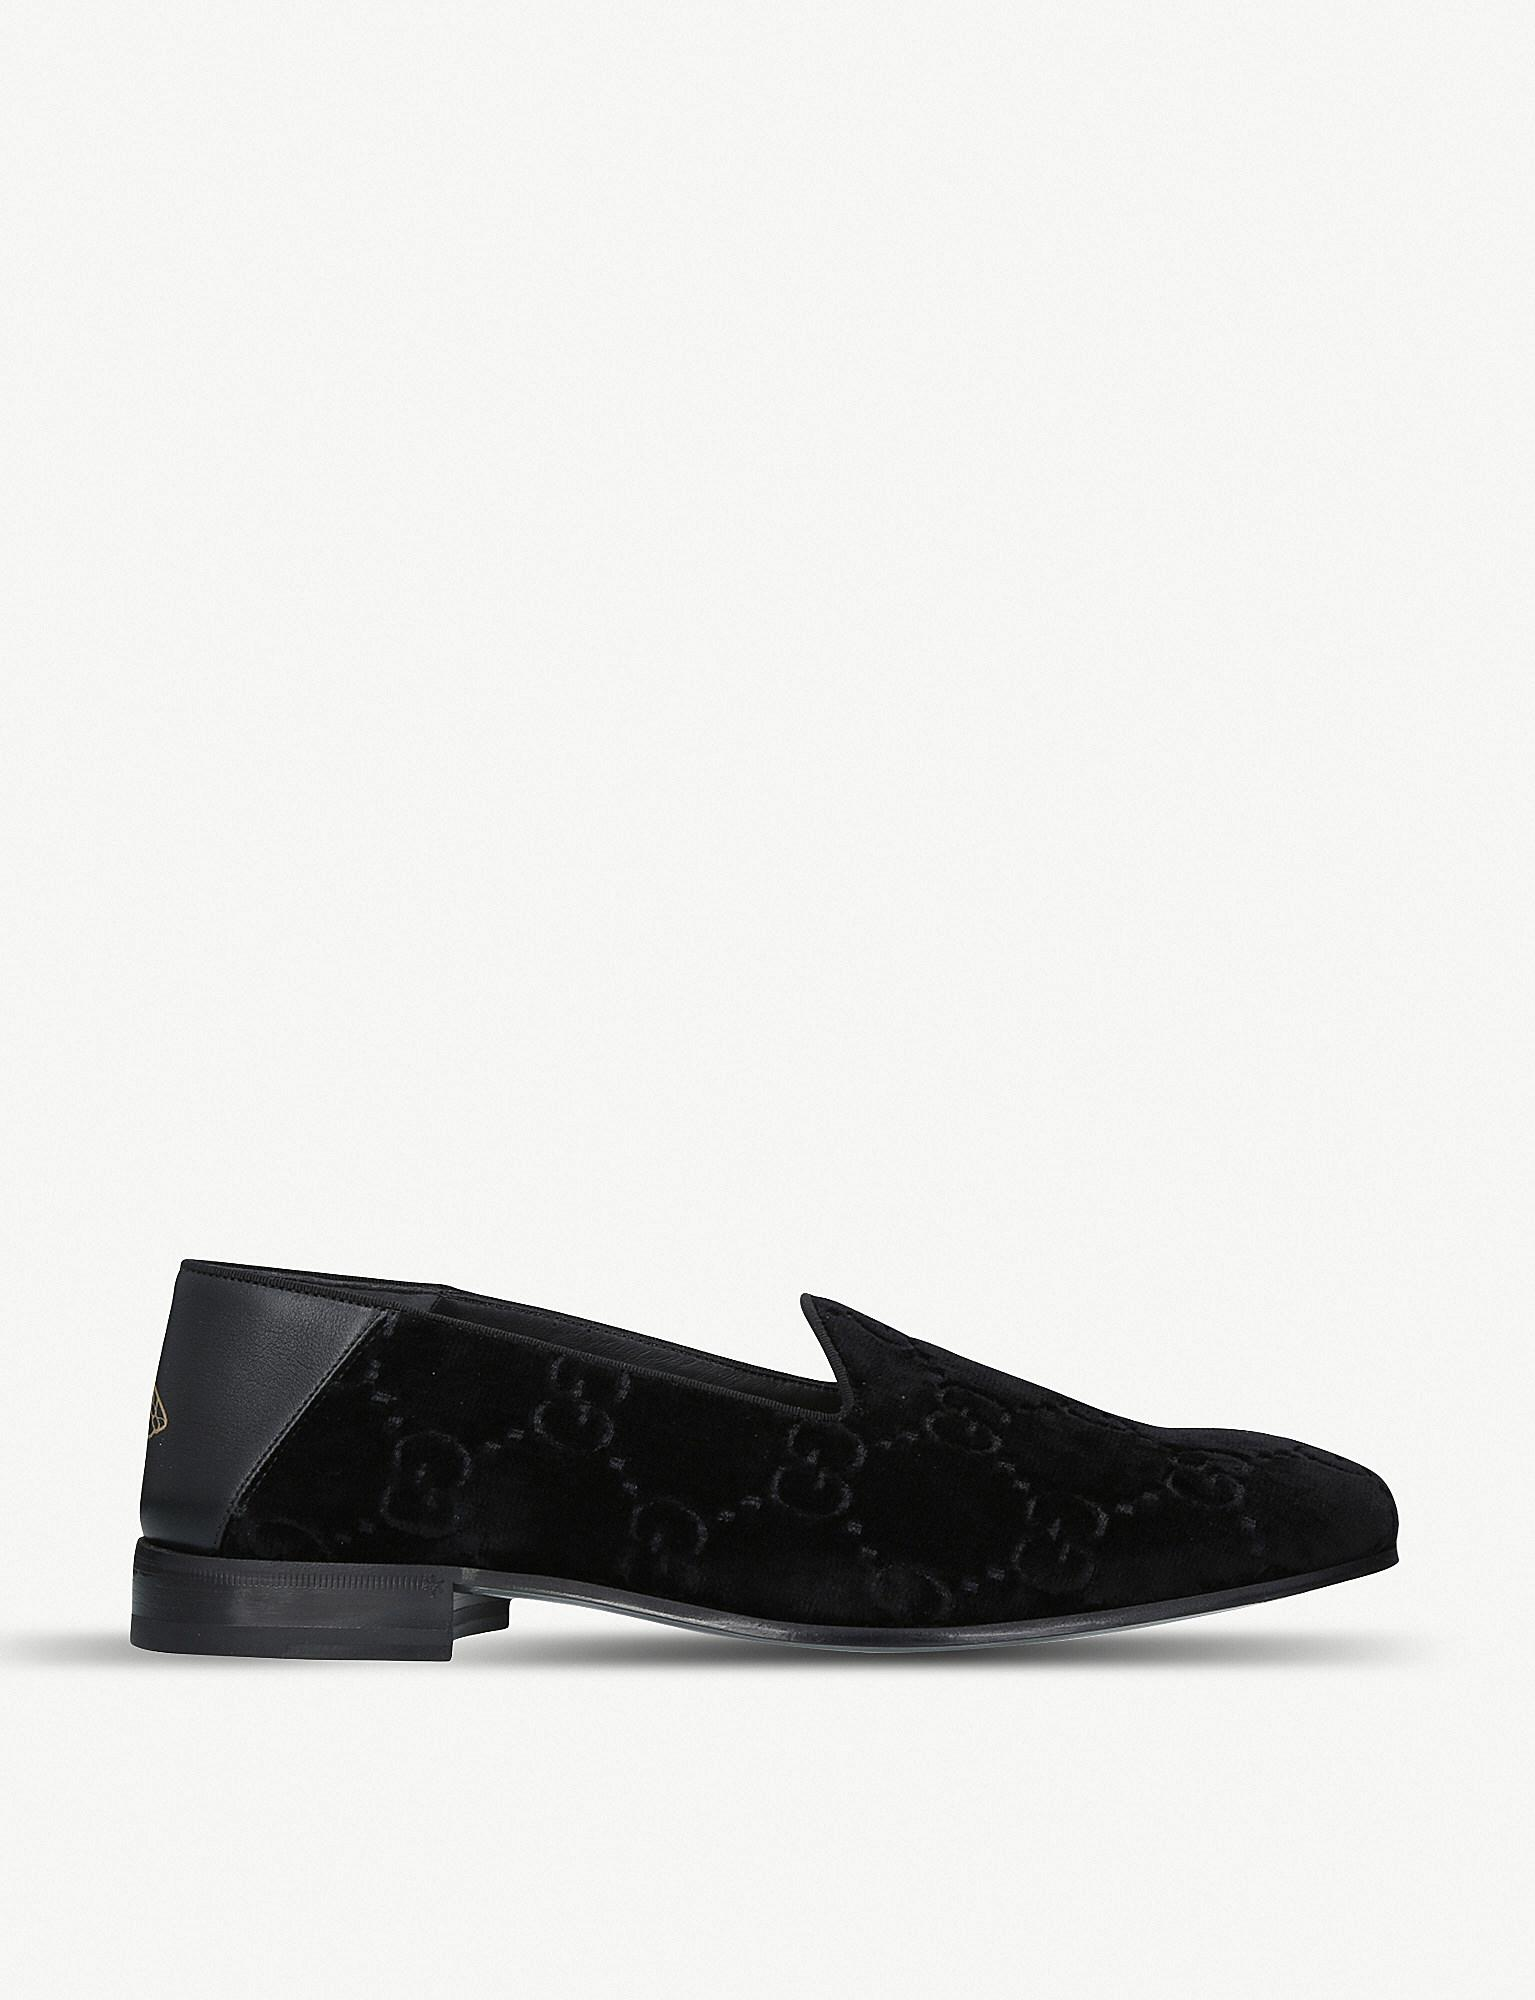 fbc527d7181 Lyst - Gucci Gg Velvet Loafers in Black